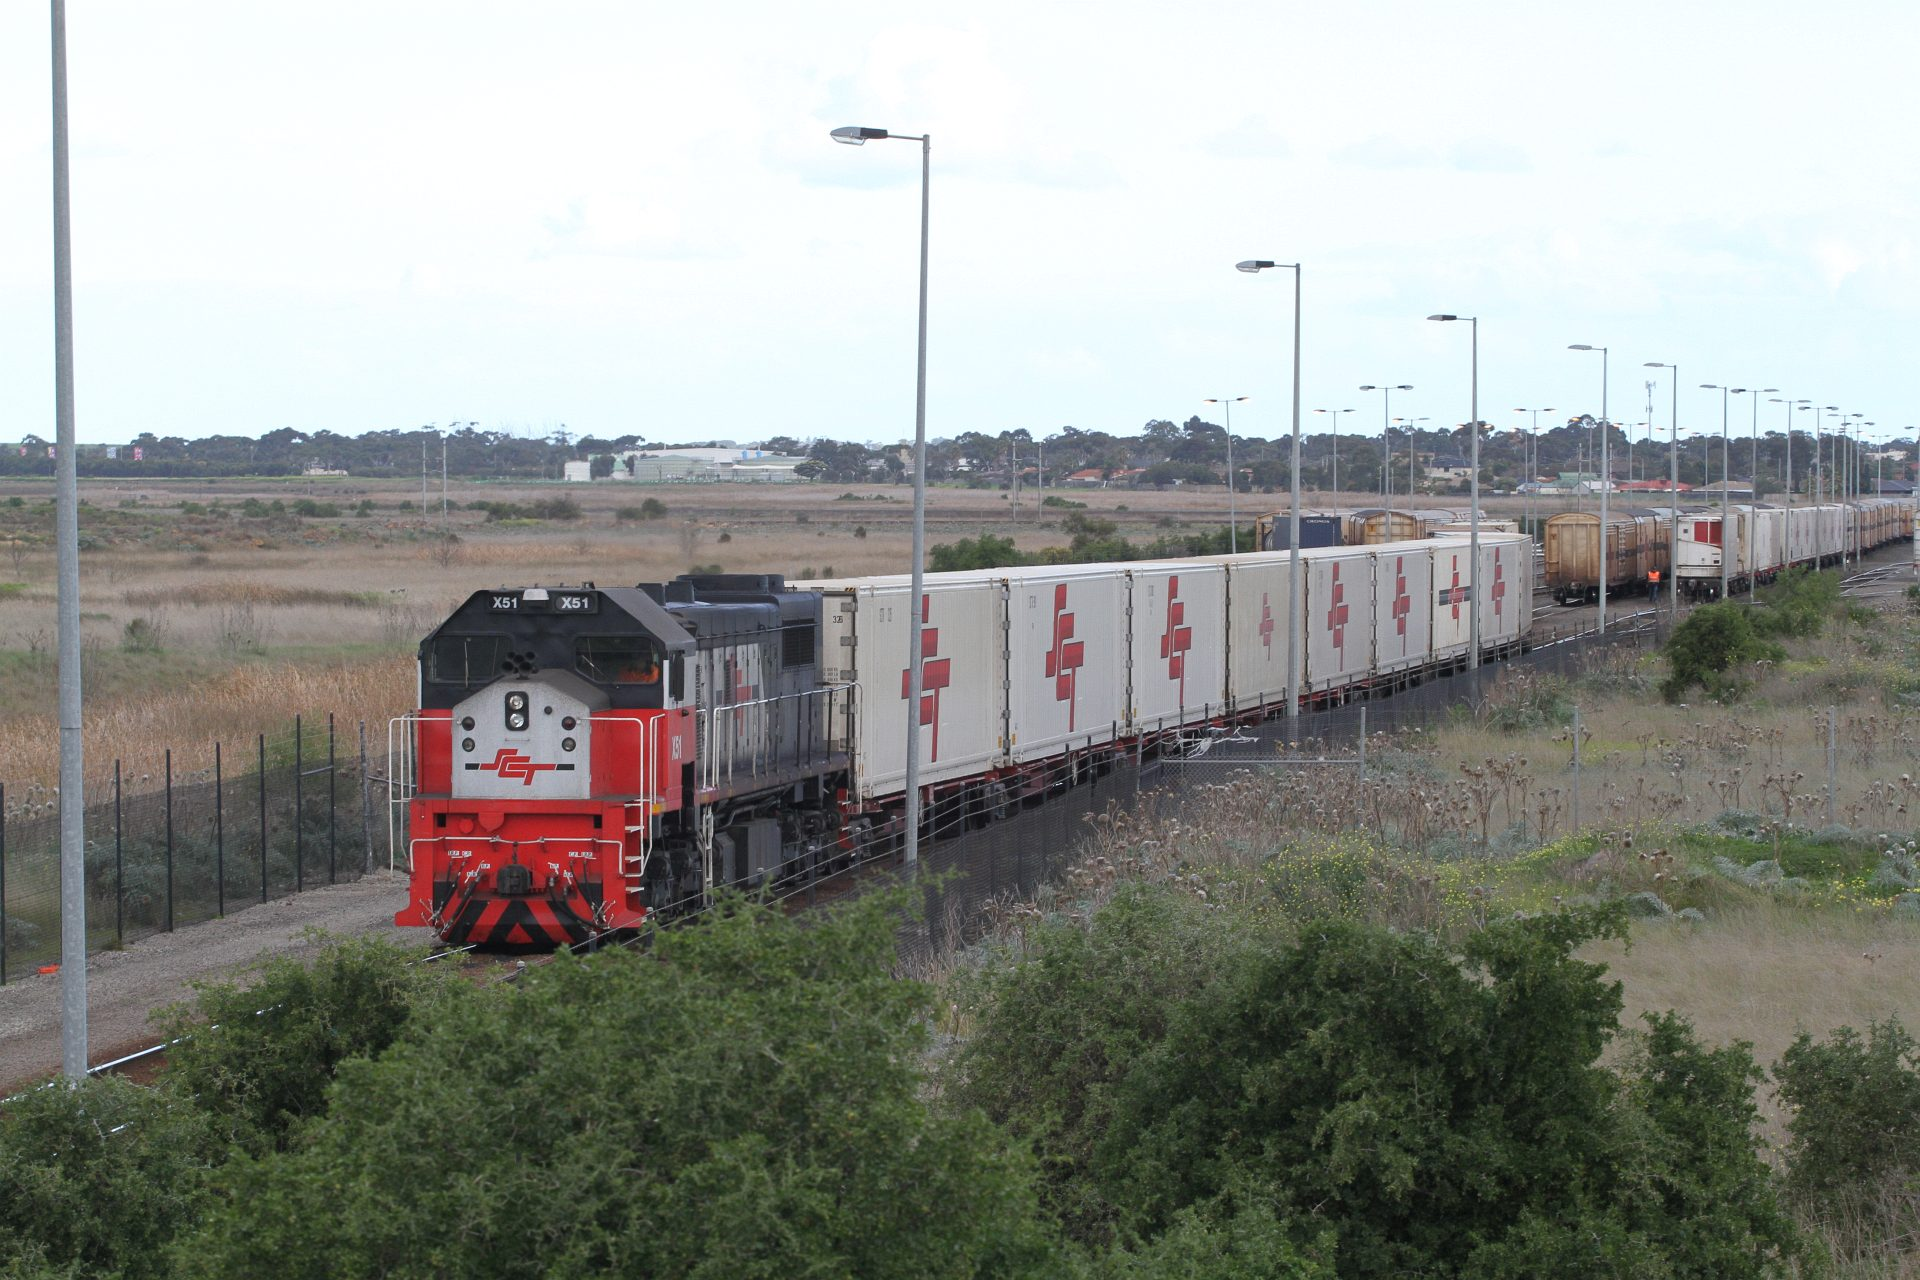 X51 Shunting Loaded Container Wagons At The Sct Depot In